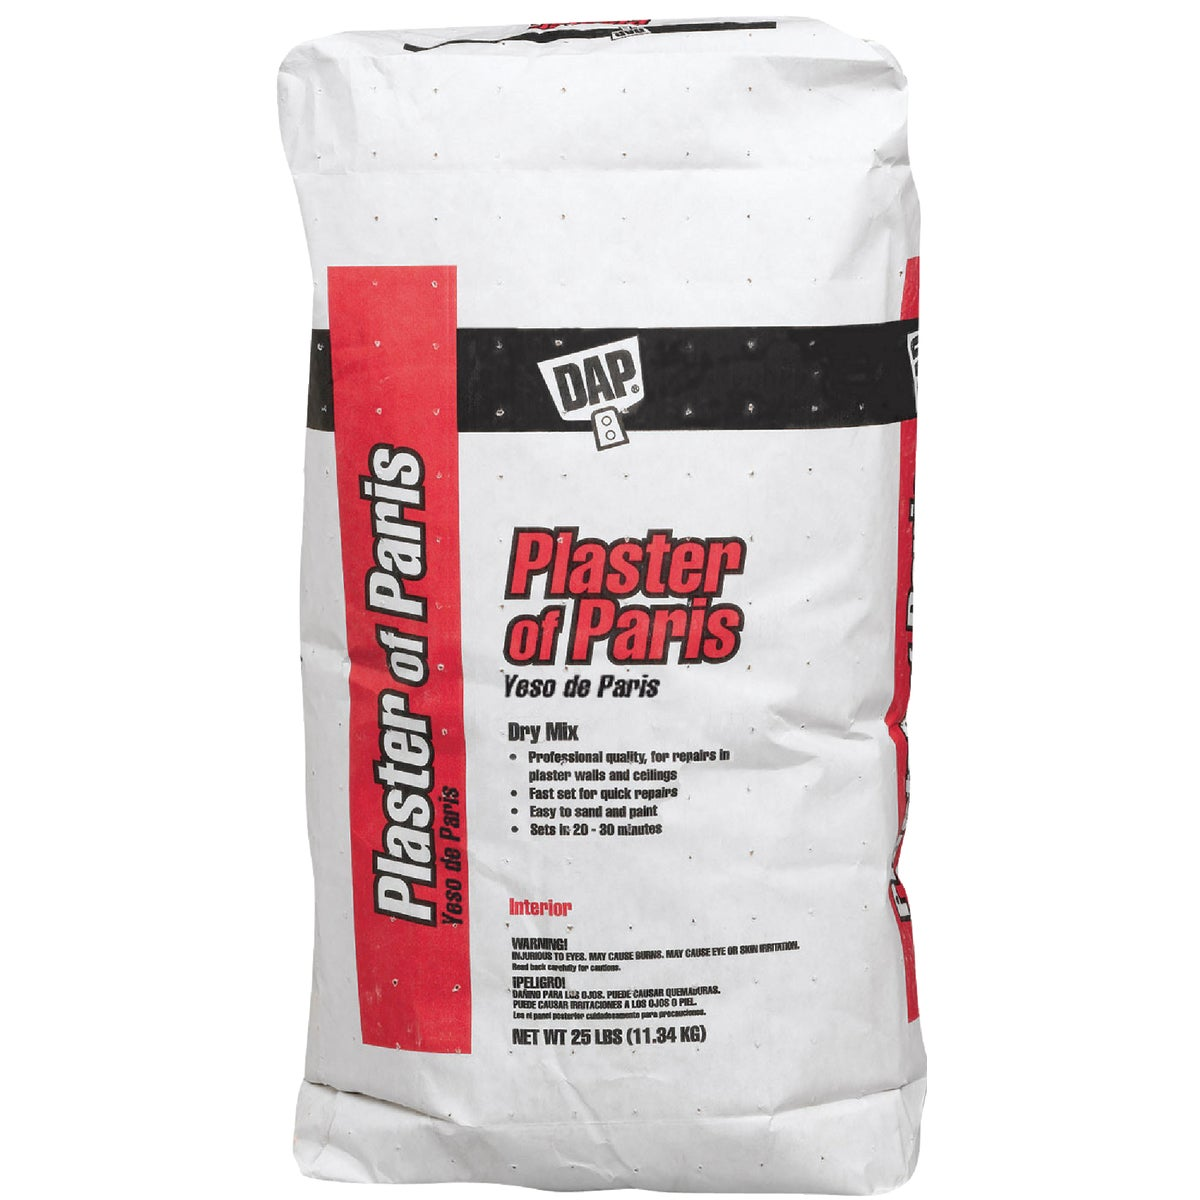 25LB PLASTER OF PARIS - 10312 by Dap Inc